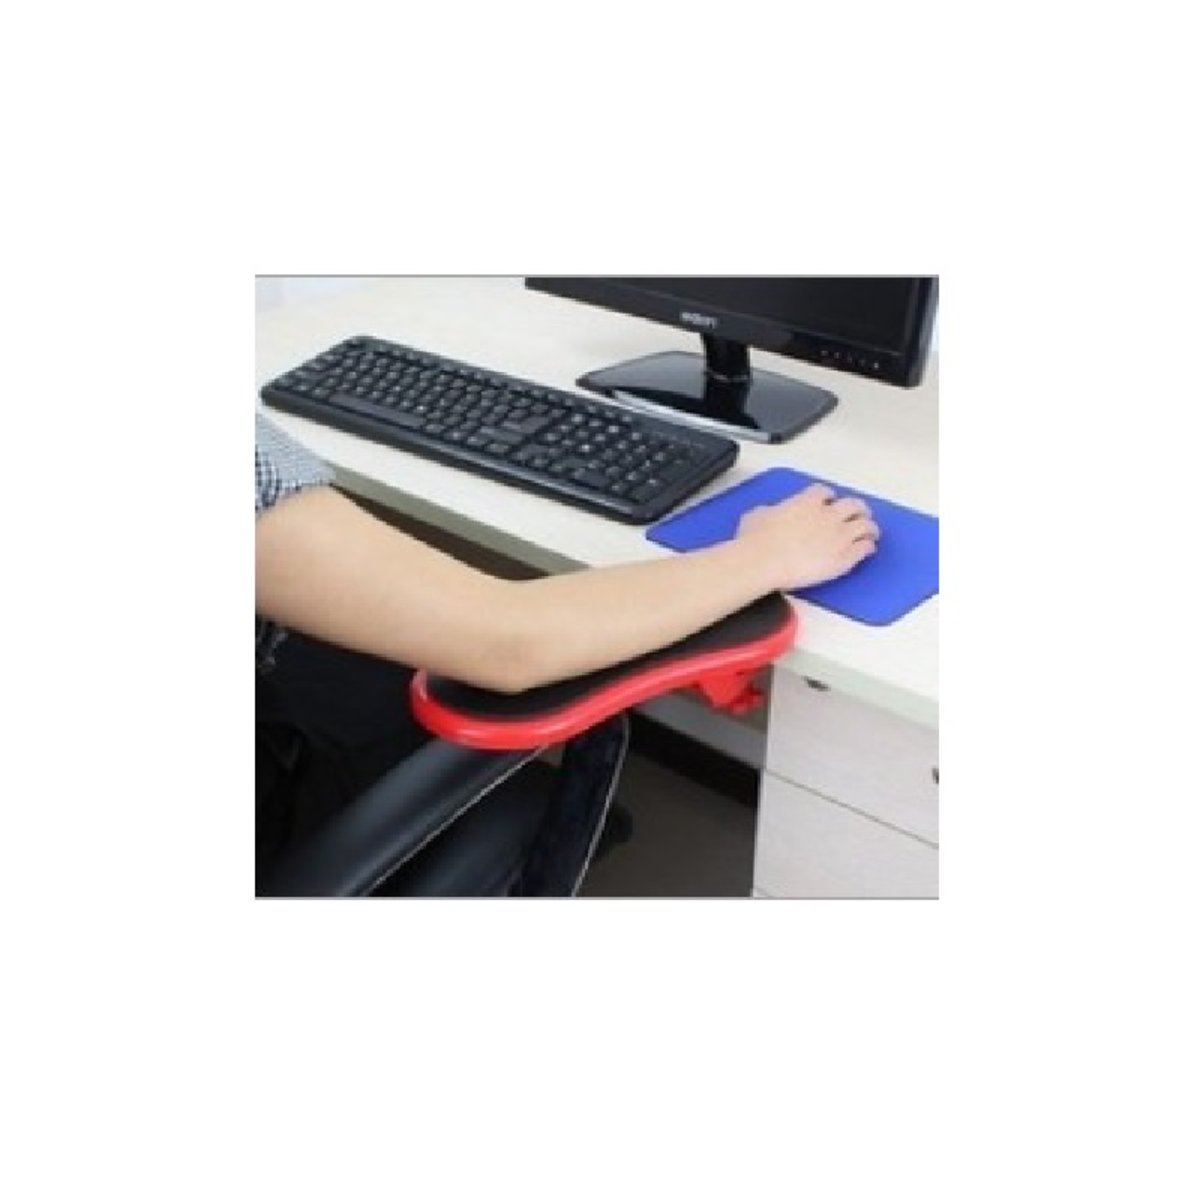 Mouse hand holder